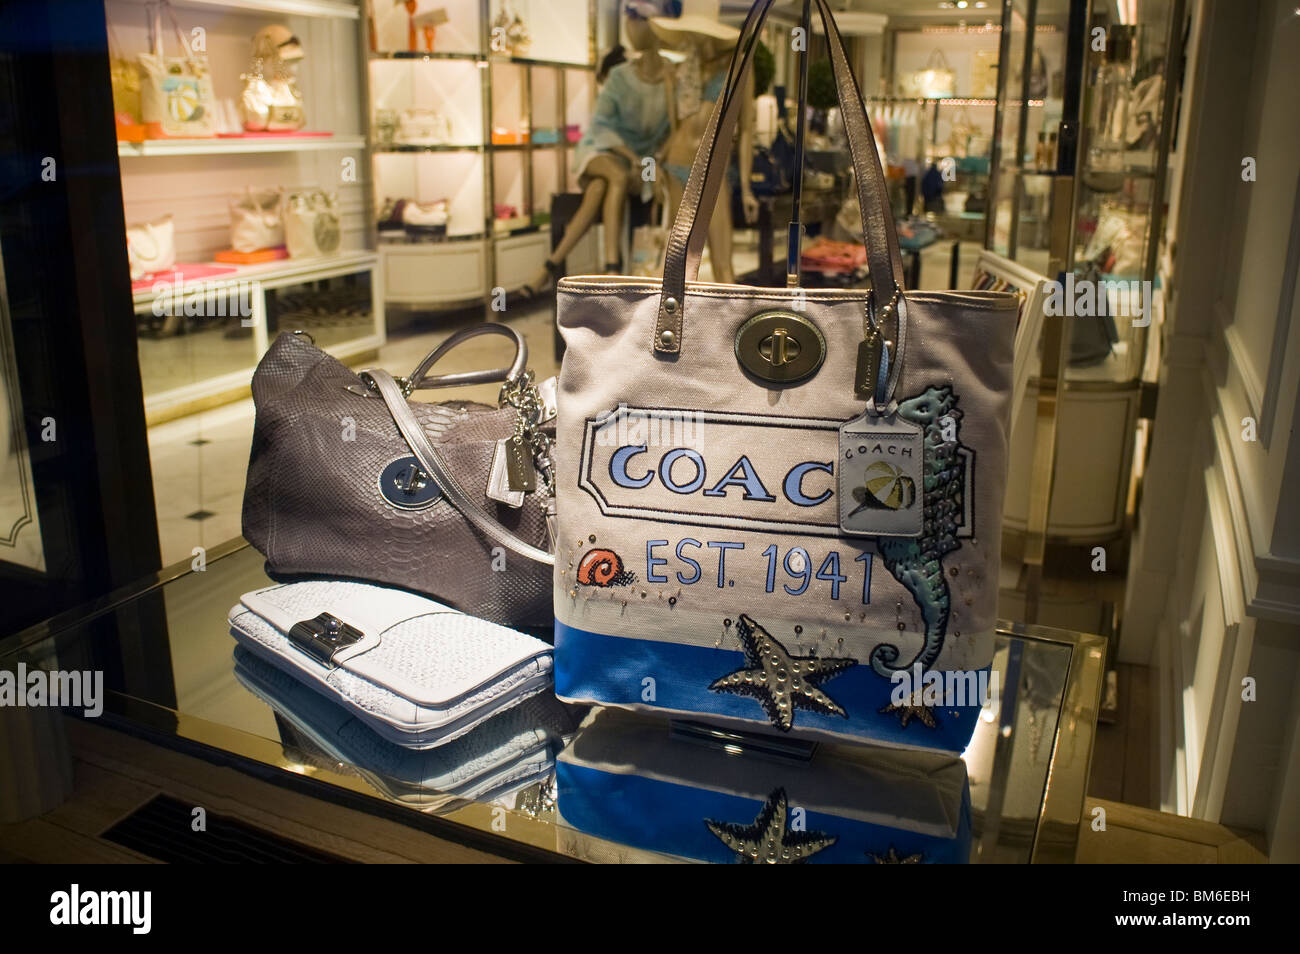 7ba71967f8 Handbags on display at the Coach store on Bleecker Street in Greenwich  Village in New York